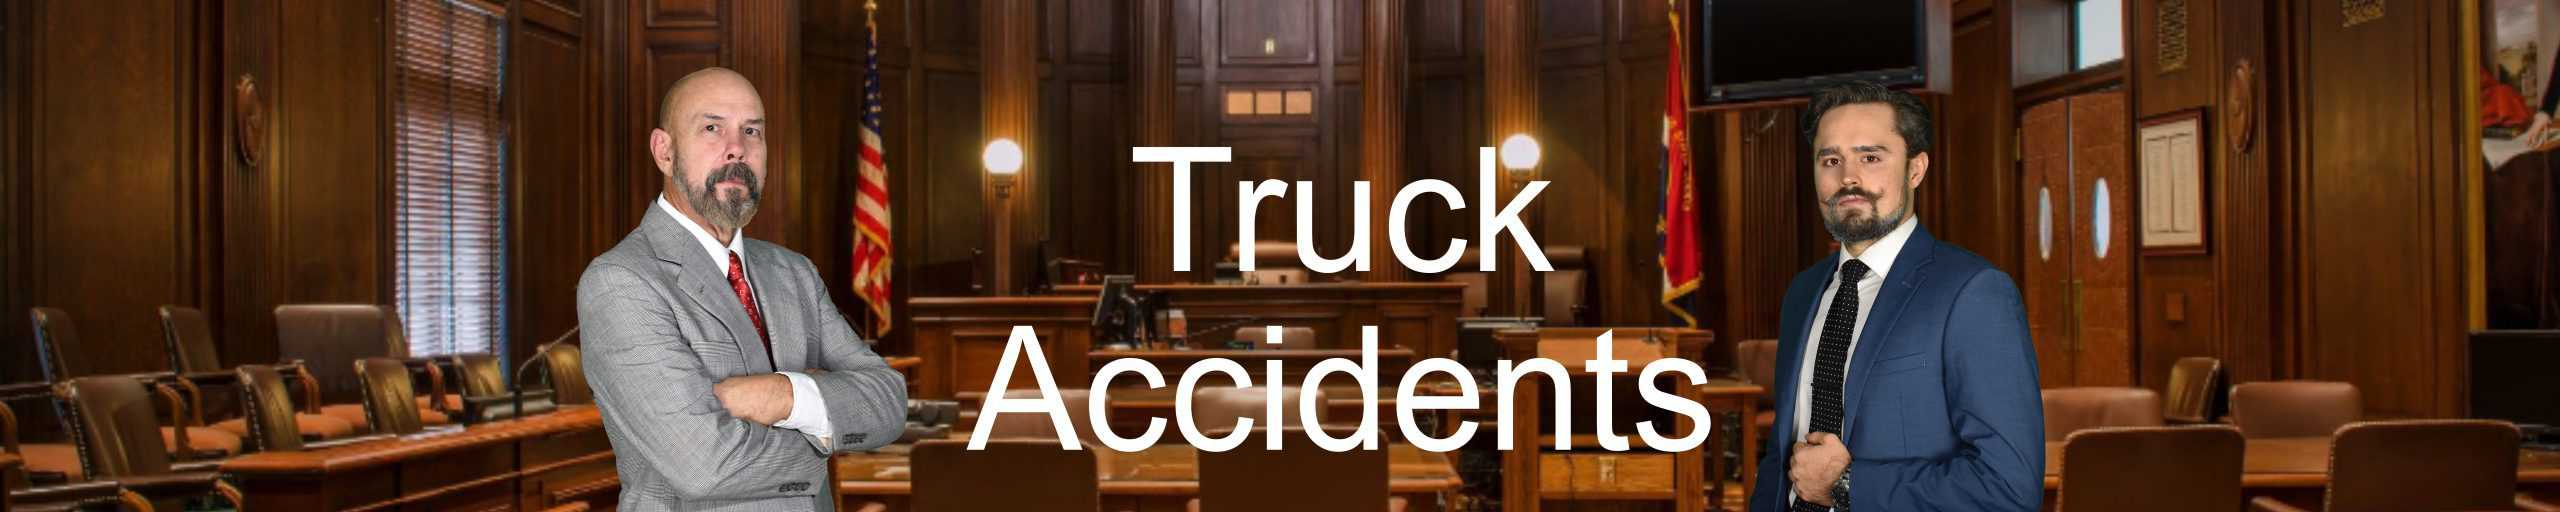 Truck-Accidents-Personal-Injury-Attorney-Lawyer-Hurt-Broken-Rear-End-Money-Settlement-Hospital-ER-Damage-Insurance-Company